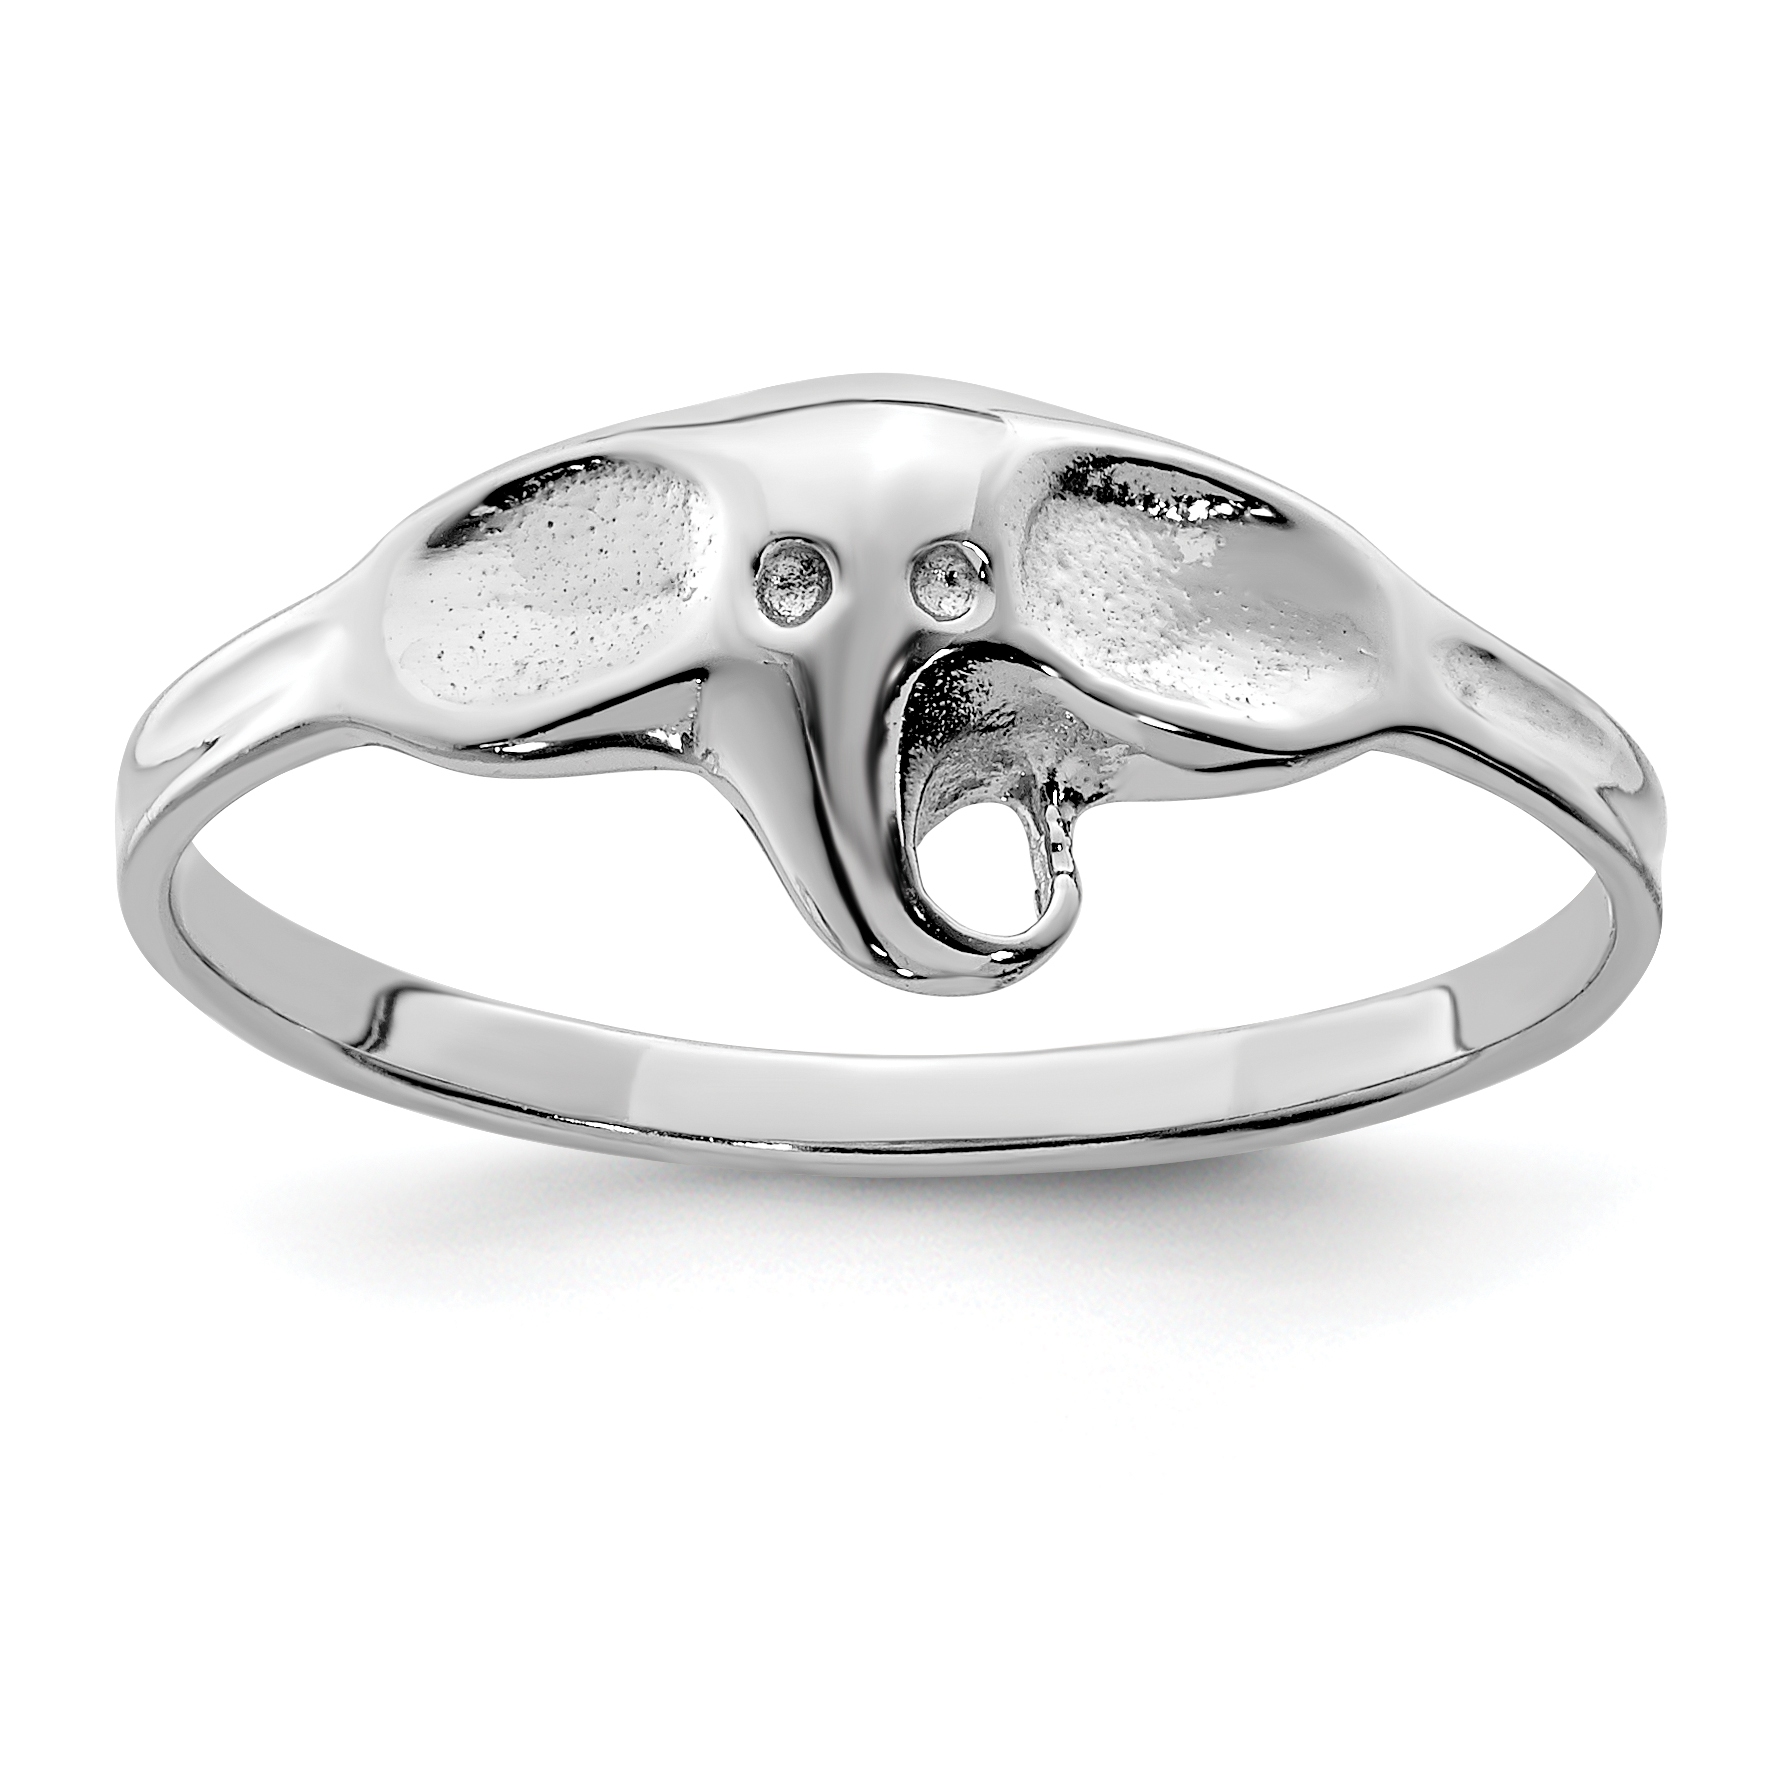 mv zm kaystore ring lab en sterling click elephant created sapphire silver kay expand to engagement rings